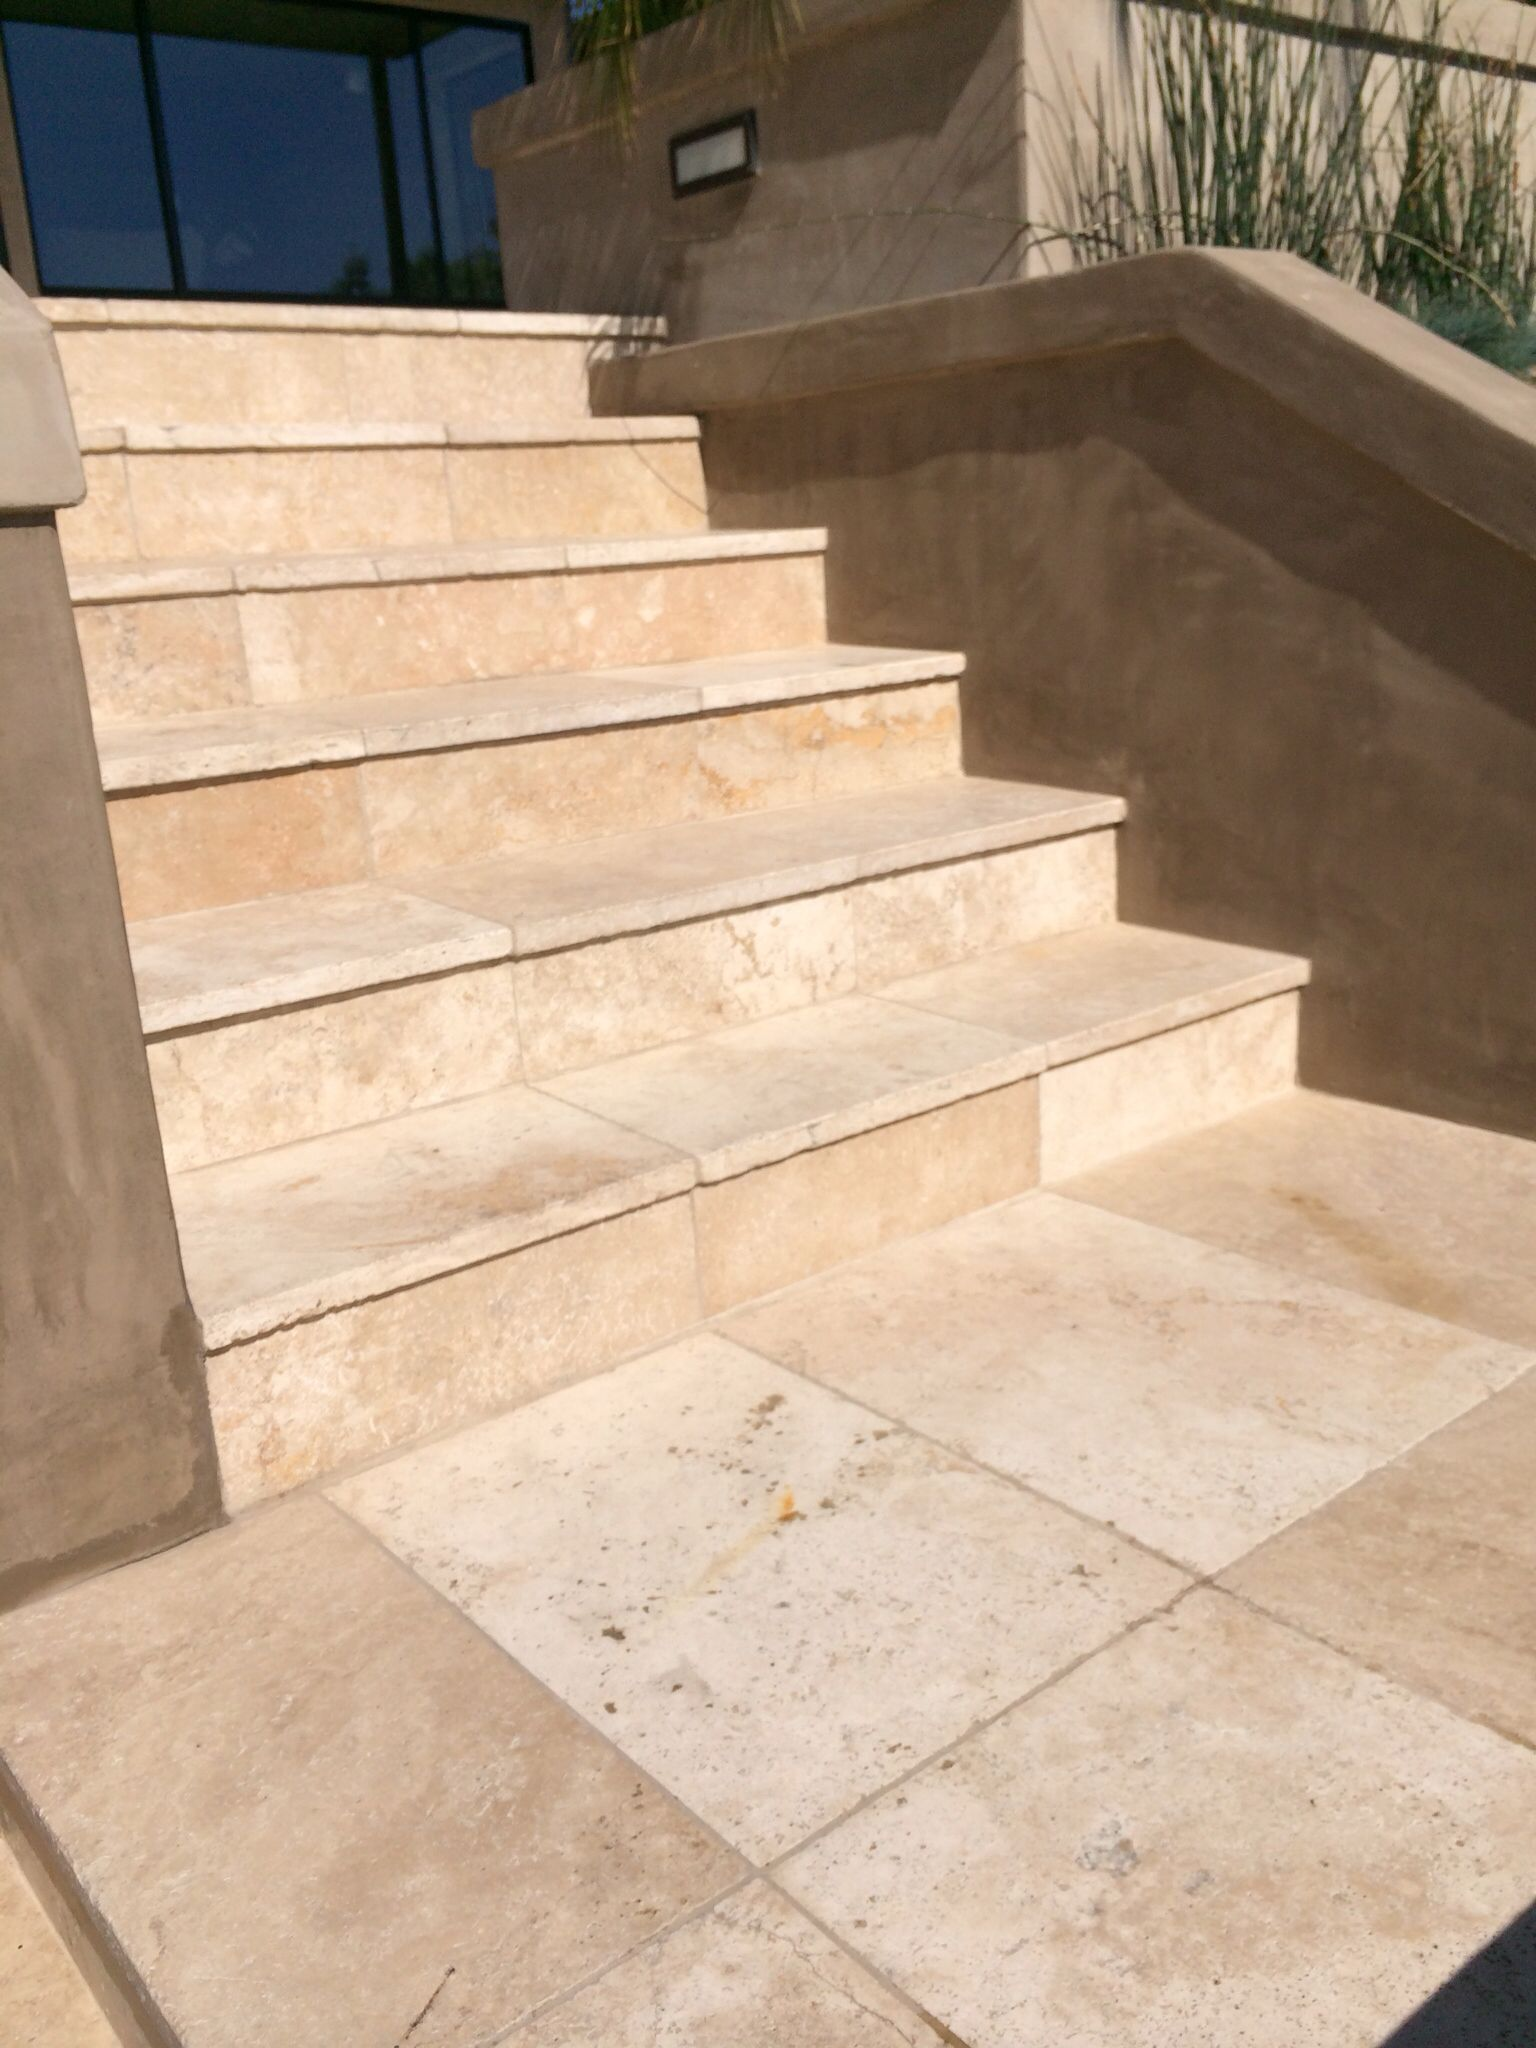 Outside Patio Tile Ideas: Tile Stairs, Patio Tiles